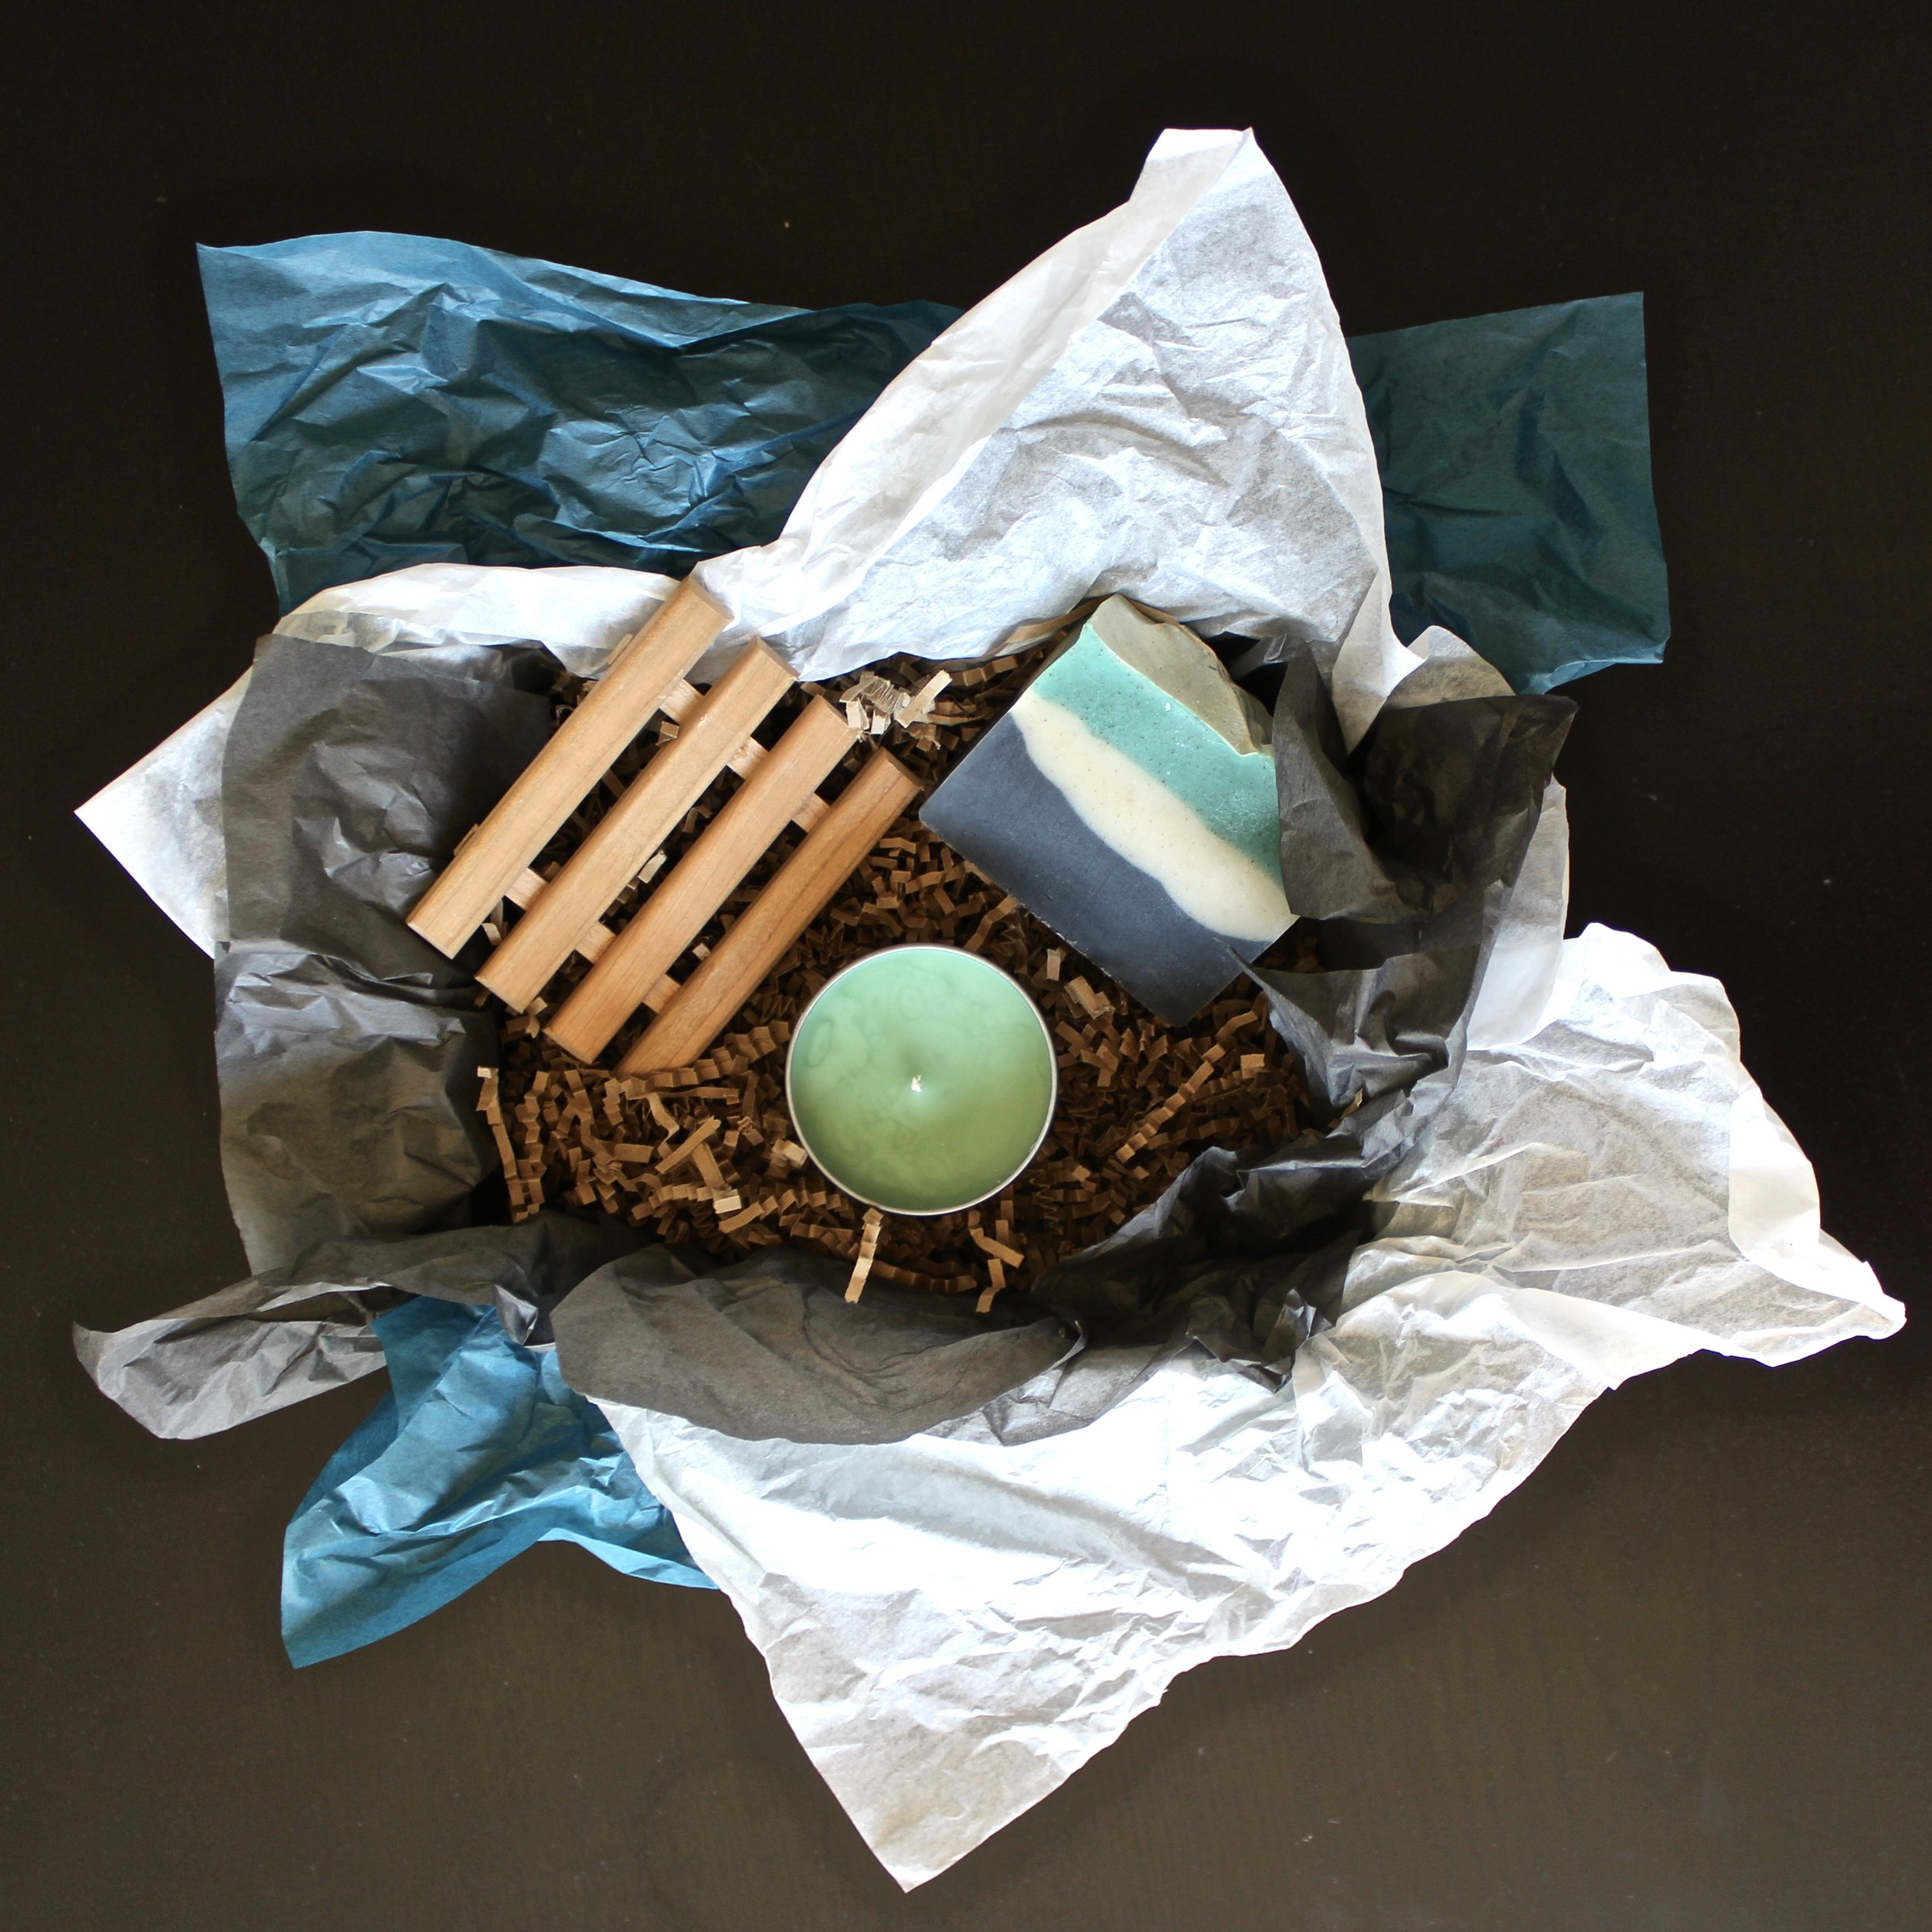 Our gift set option allows you to personalize your eco-friendly, naturally luxurious present.